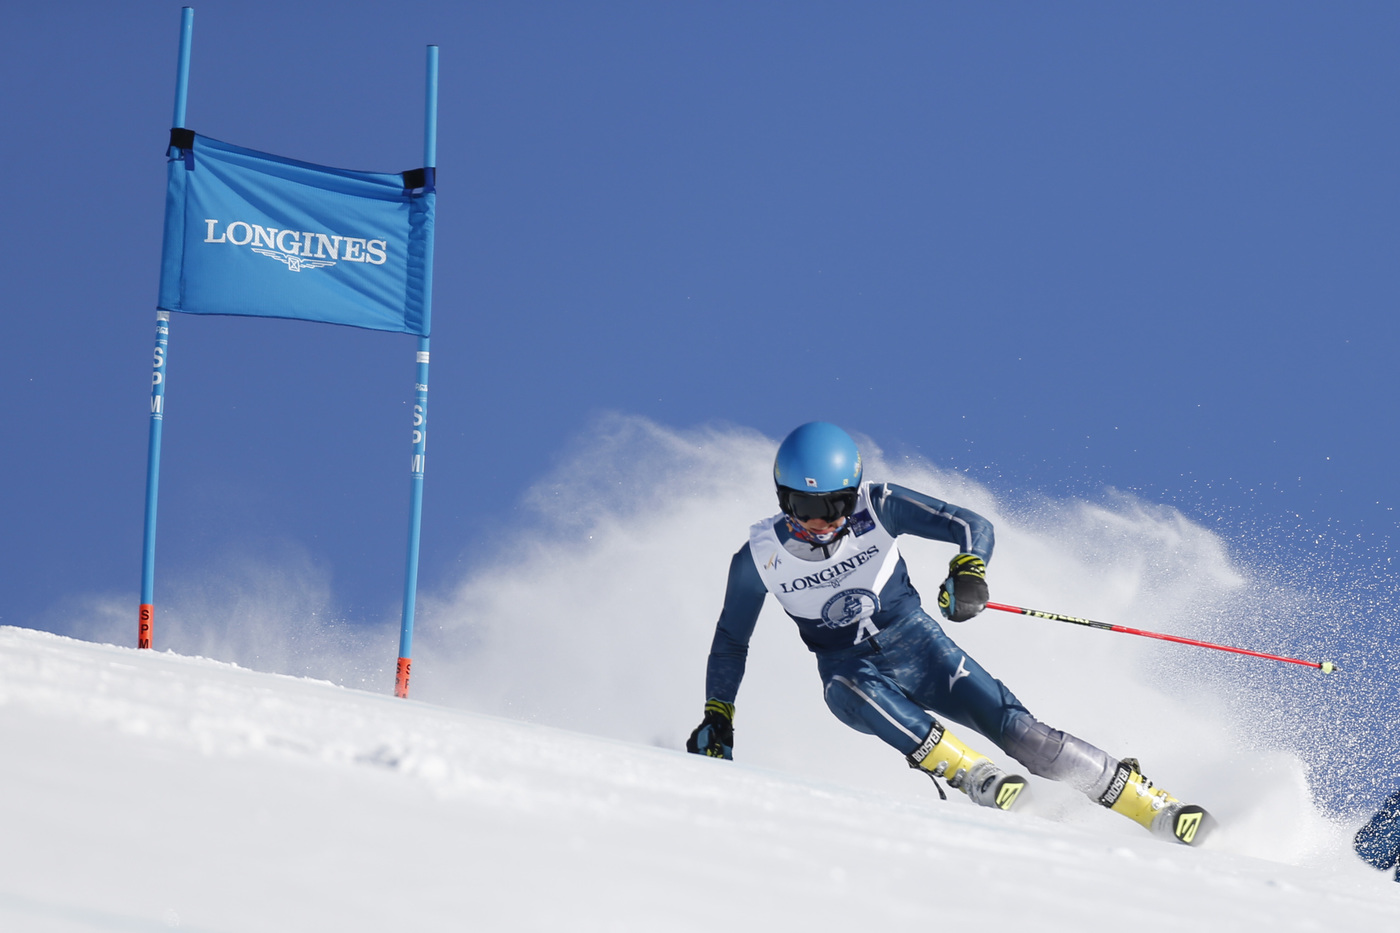 Longines Alpine Skiing Event: Longines Future Ski Champions : The best international young skiers faced off during the FIS Alpine World Cup Finals   13